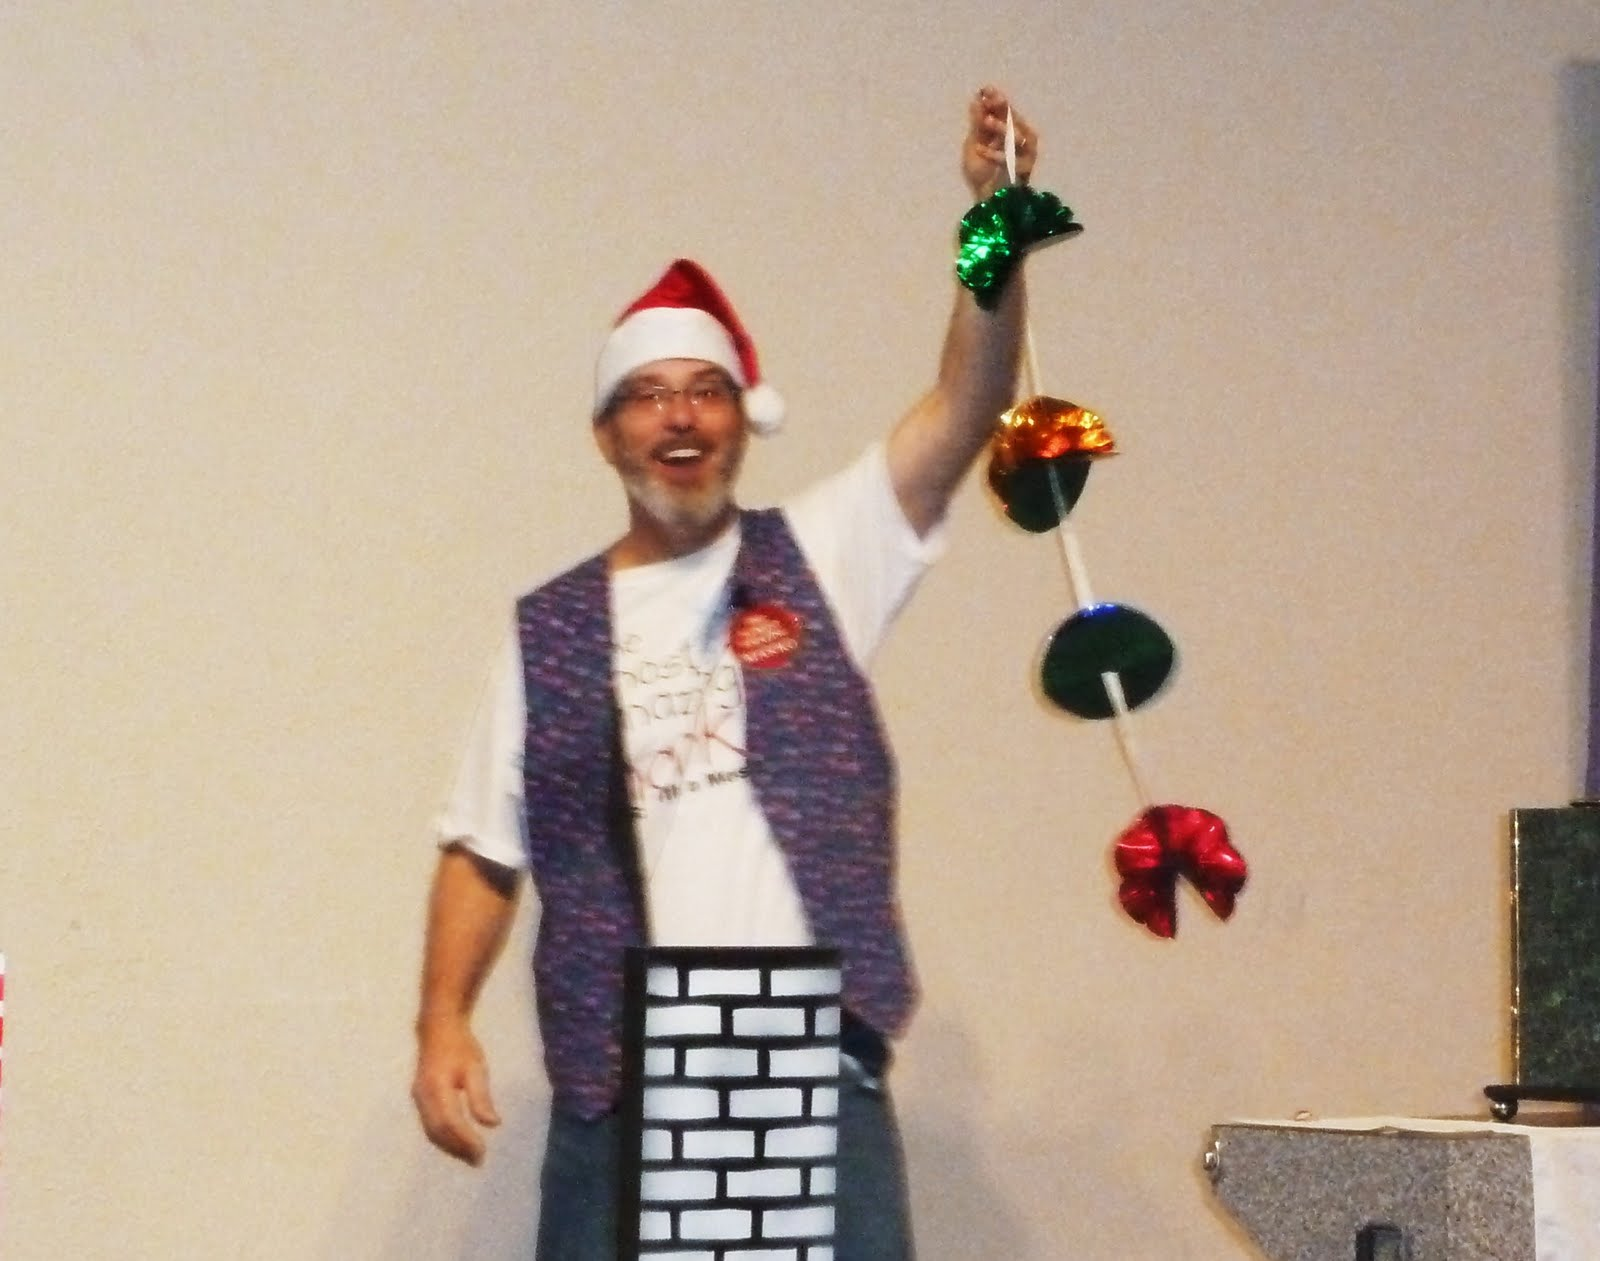 After my holiday show at New World United Methodist Church in Arlington, ...